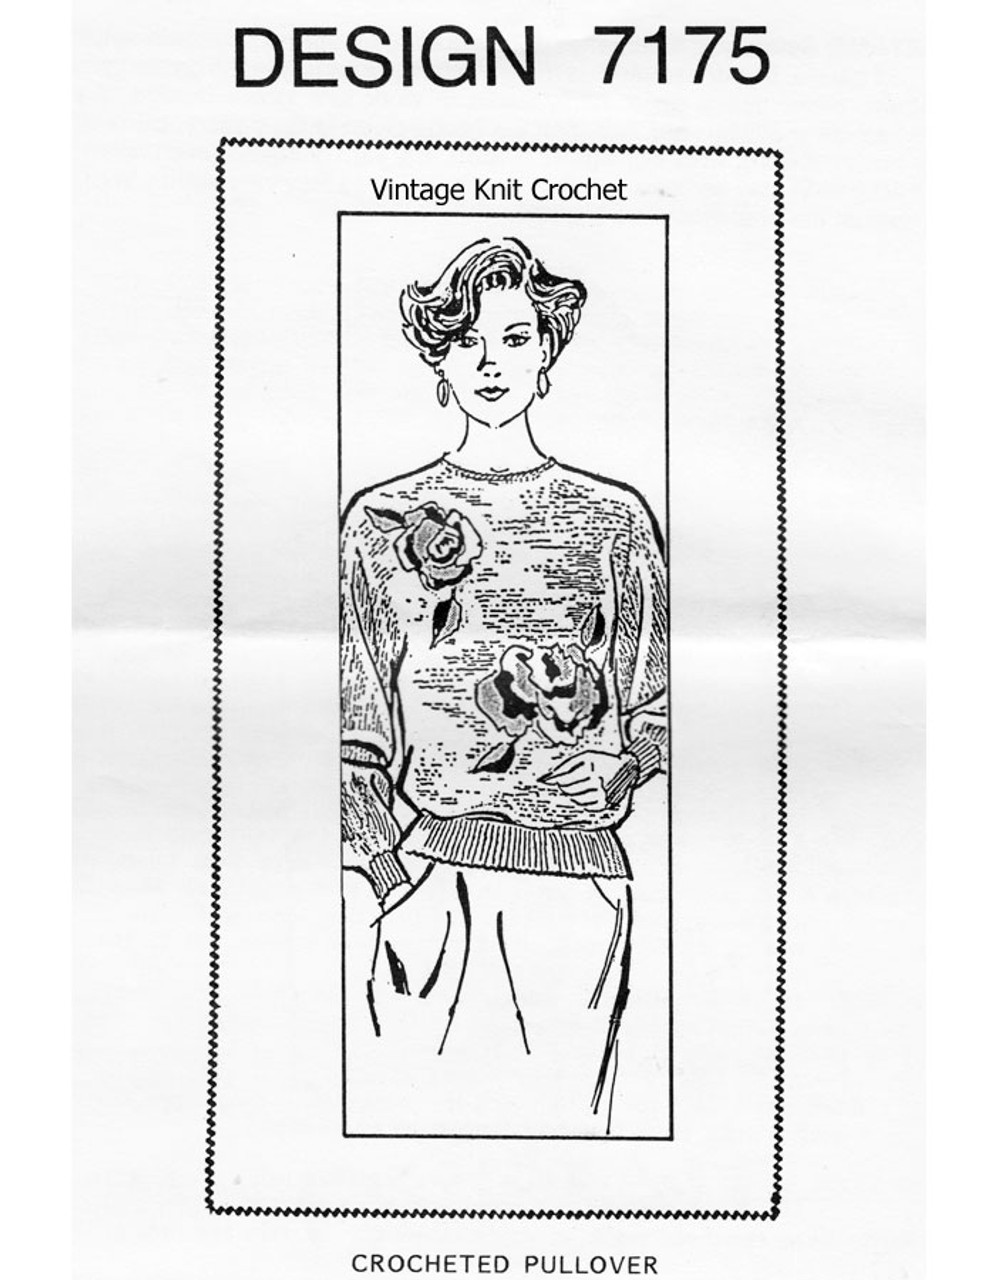 Crochet Pullover Pattern with Rose Applique Design 7175